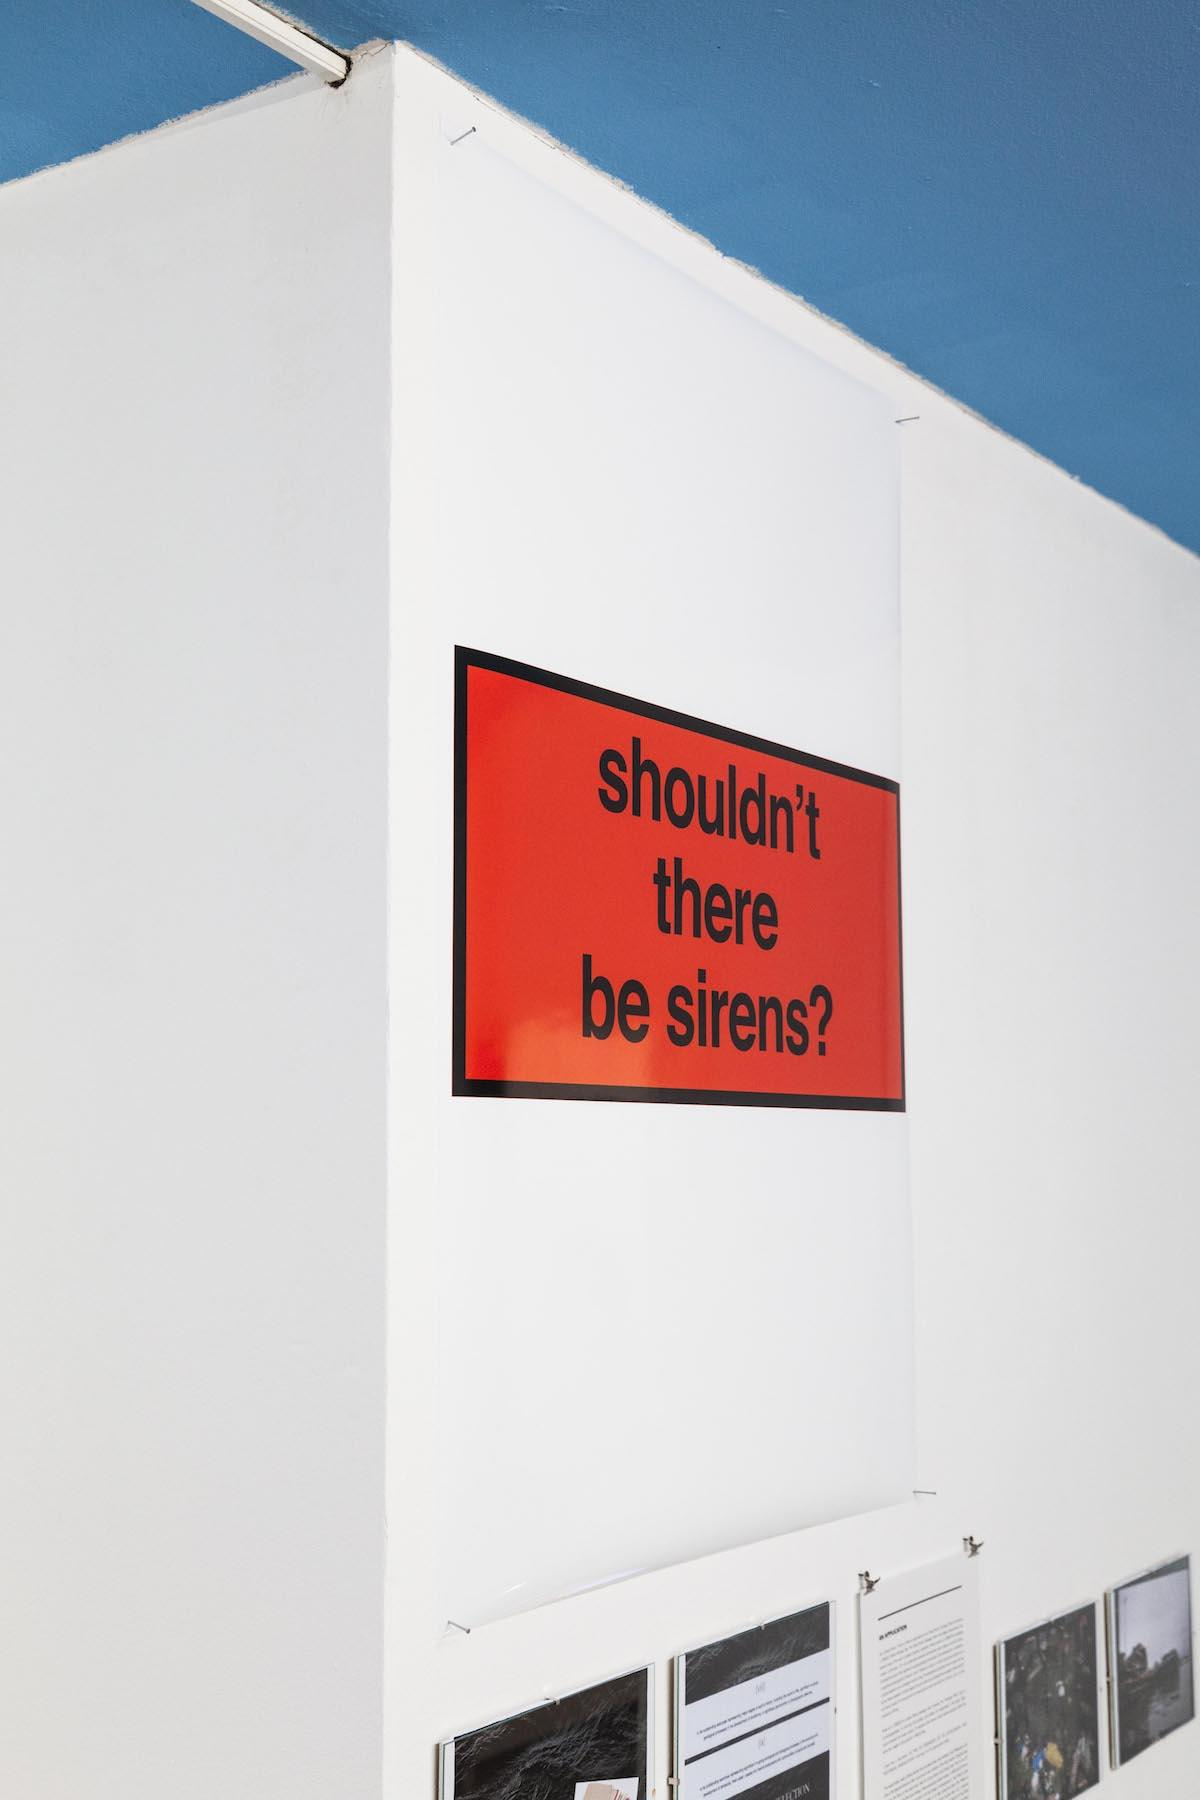 Nora Turato shouldn't there be sirens?, 2018,Inkjet Print, 84,1 x 118,9 cm, unique